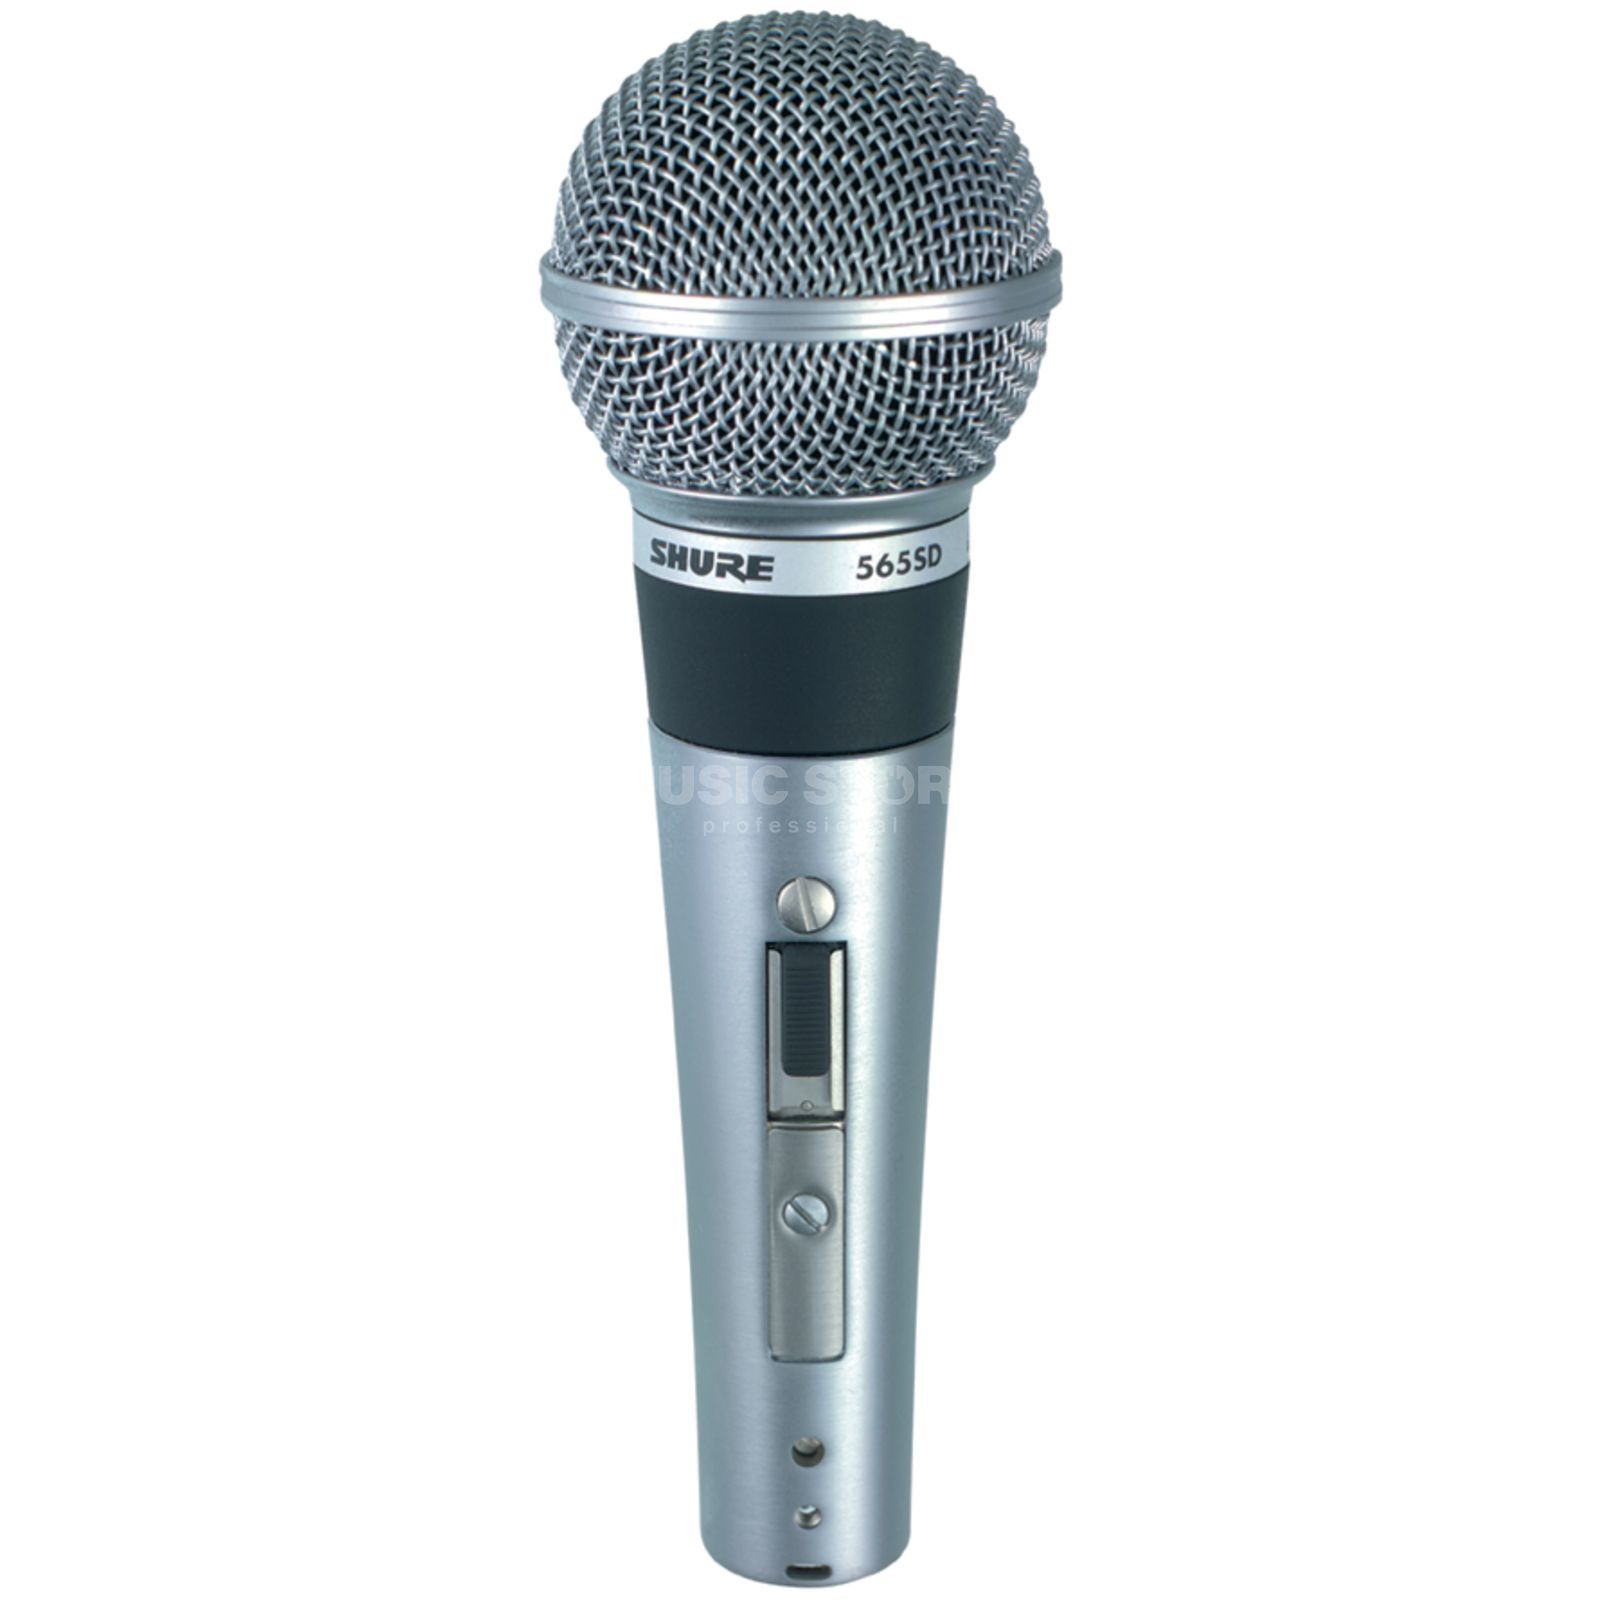 Shure 565SD Classic Microphone Produktbillede